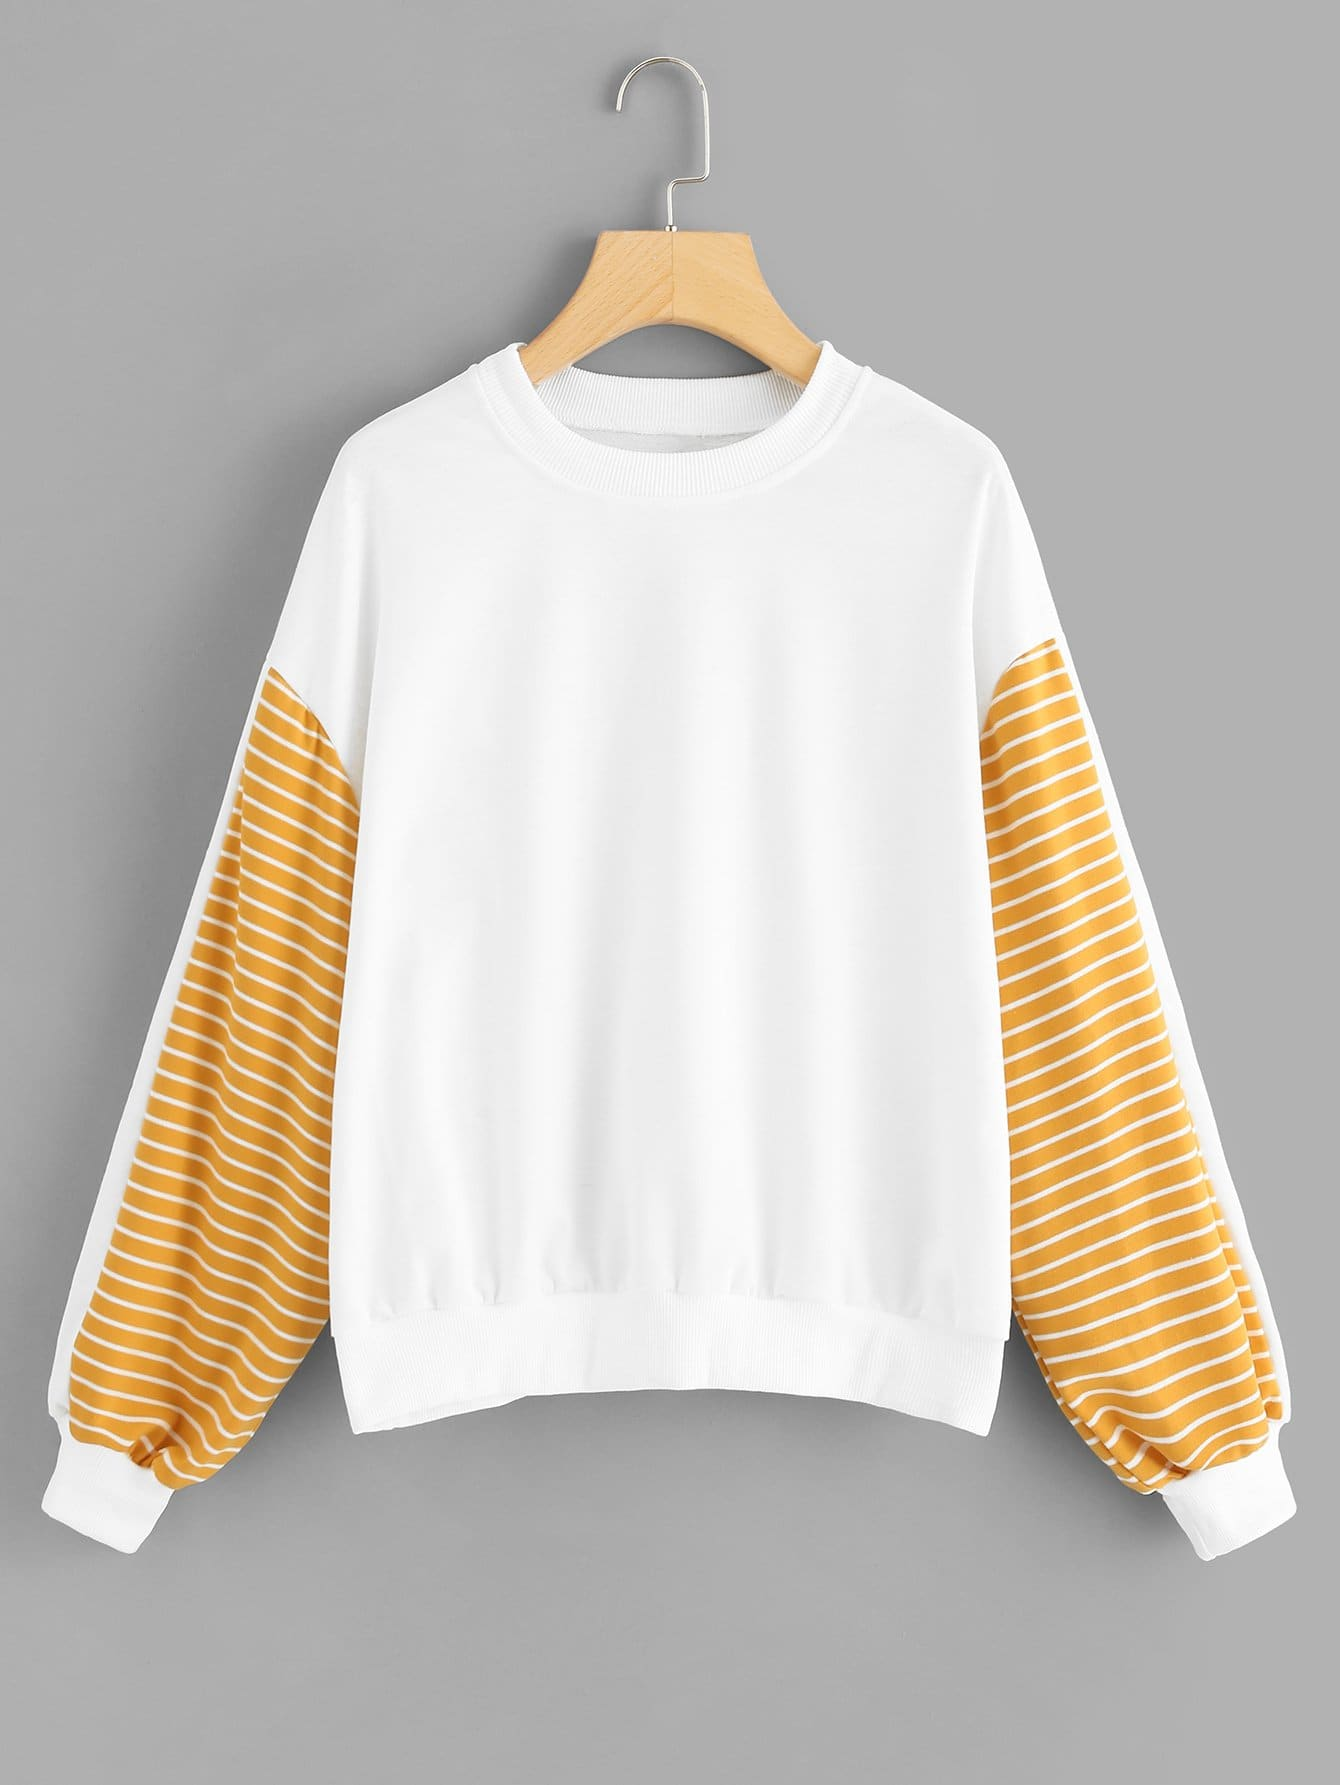 Contrast Striped Panel Sleeve Sweatshirt